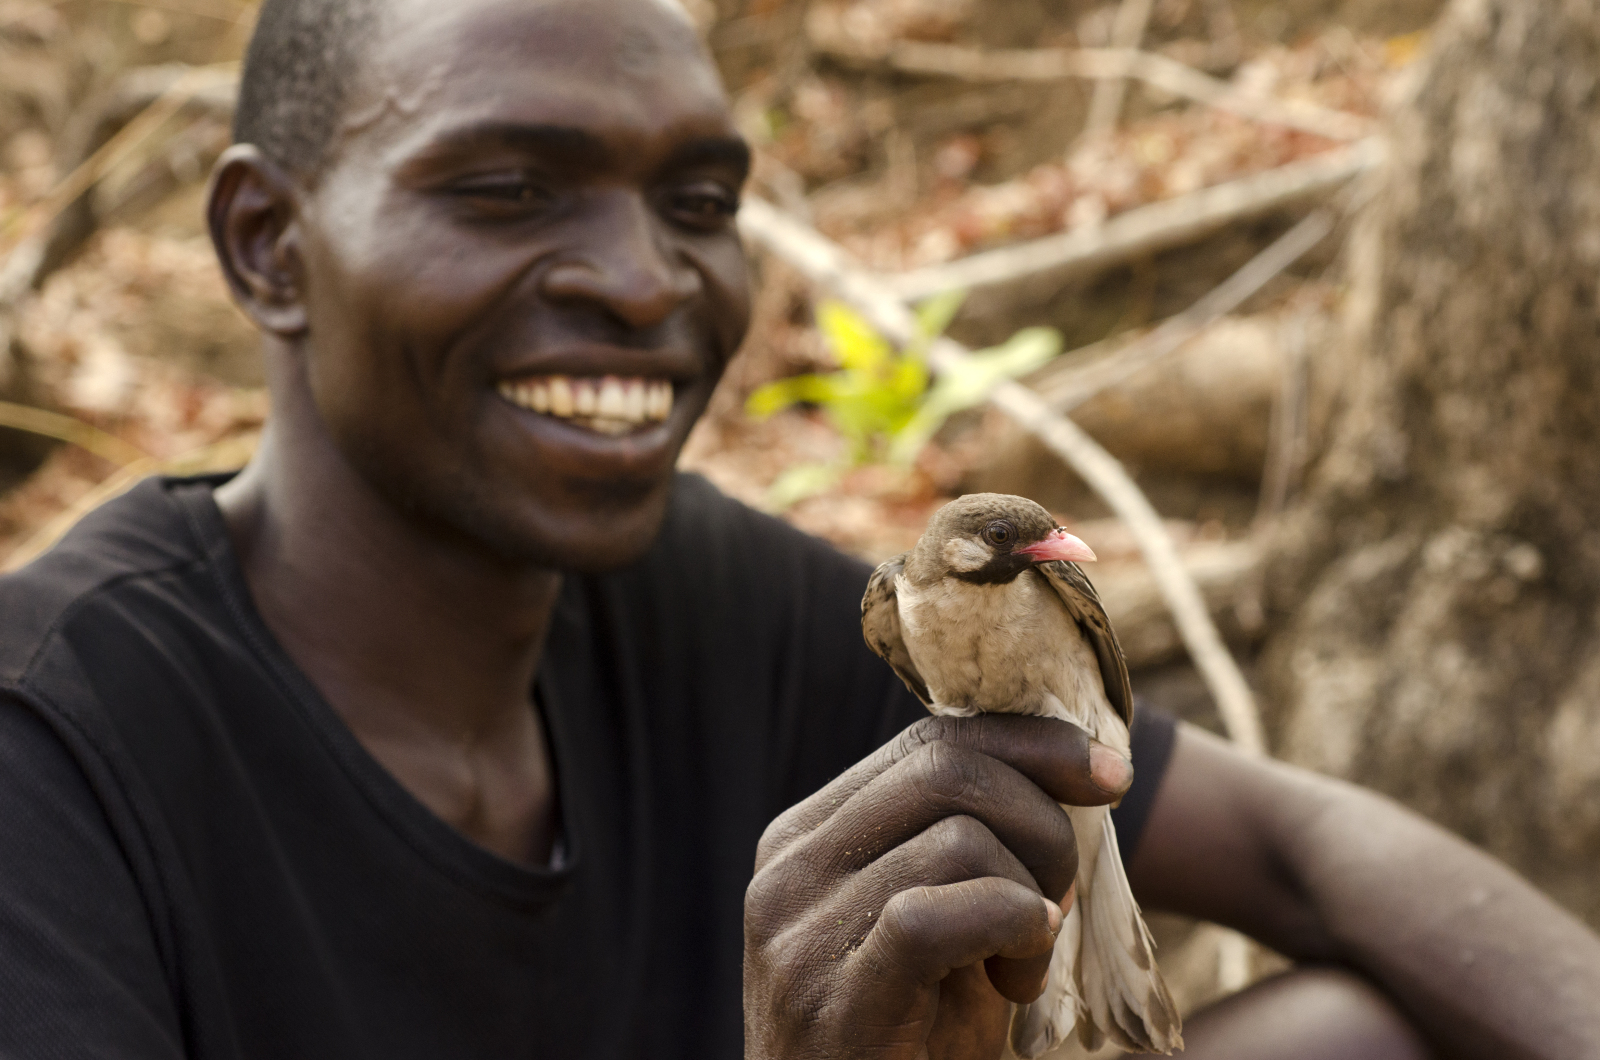 Honey hunter holding a male honeyguide